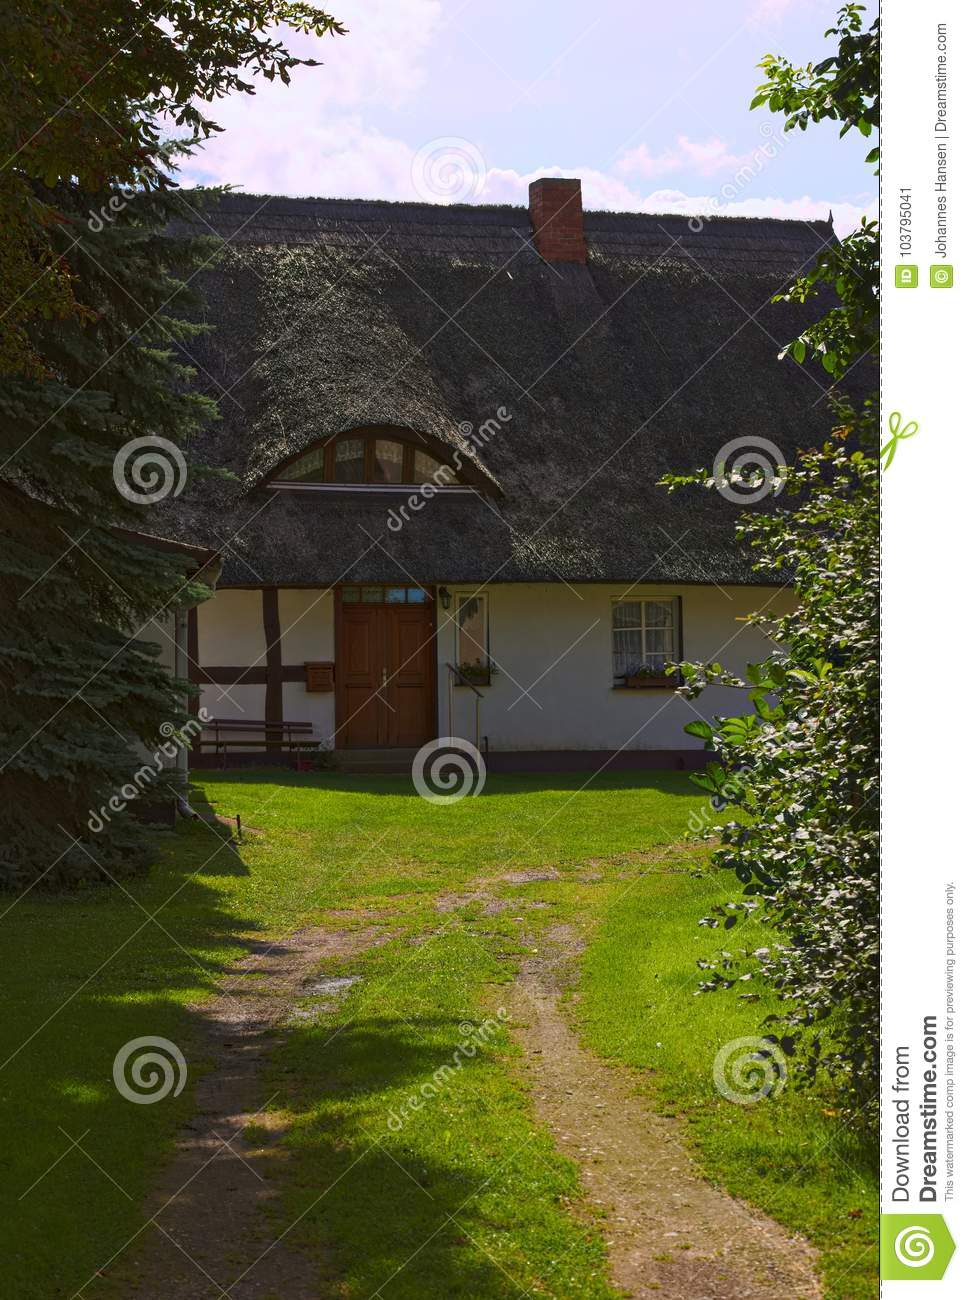 Reed roofed house, listed as monument in Kroeslin, Germany